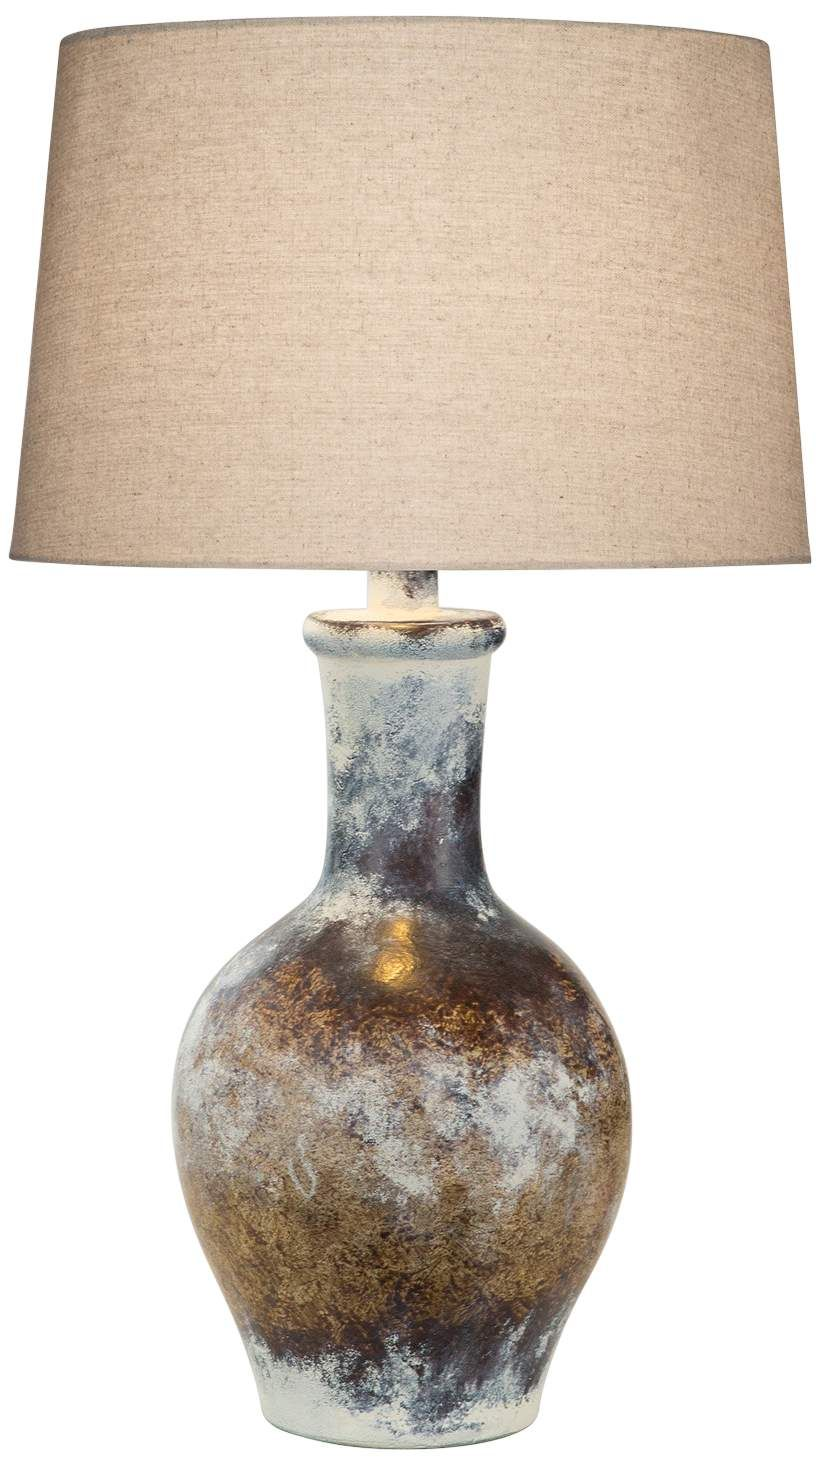 Cepeda Adobe Multi-Color Hydrocal Vase Table Lamp #tablelamp #tablelamps #tablelampideas #tablelampsforlivingroom